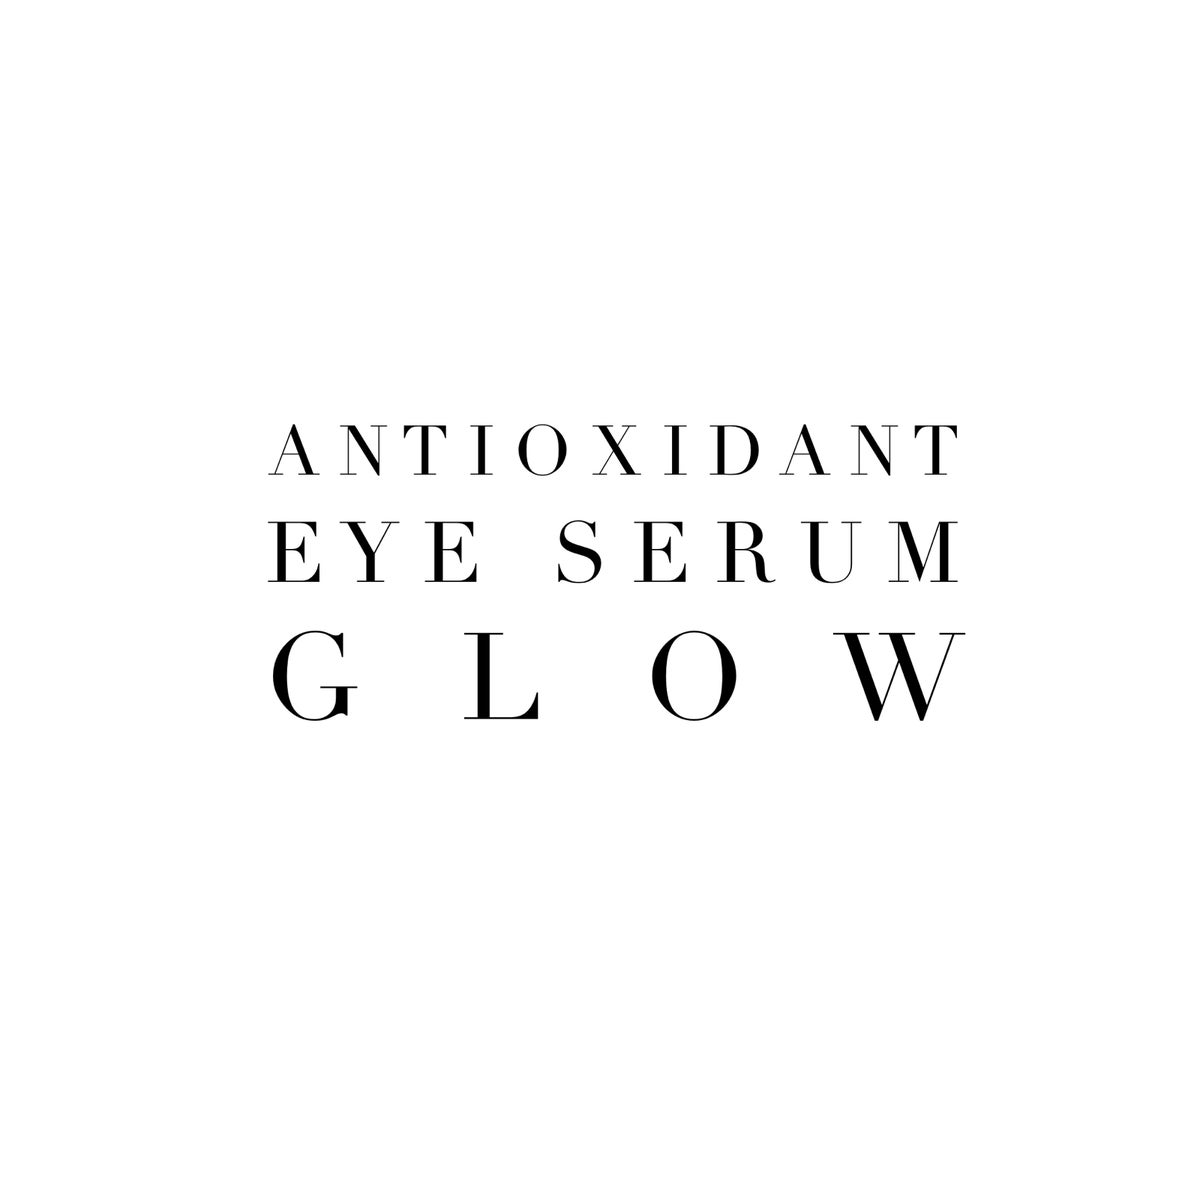 Image of Antioxidant Eye Serums - GLOW [day]